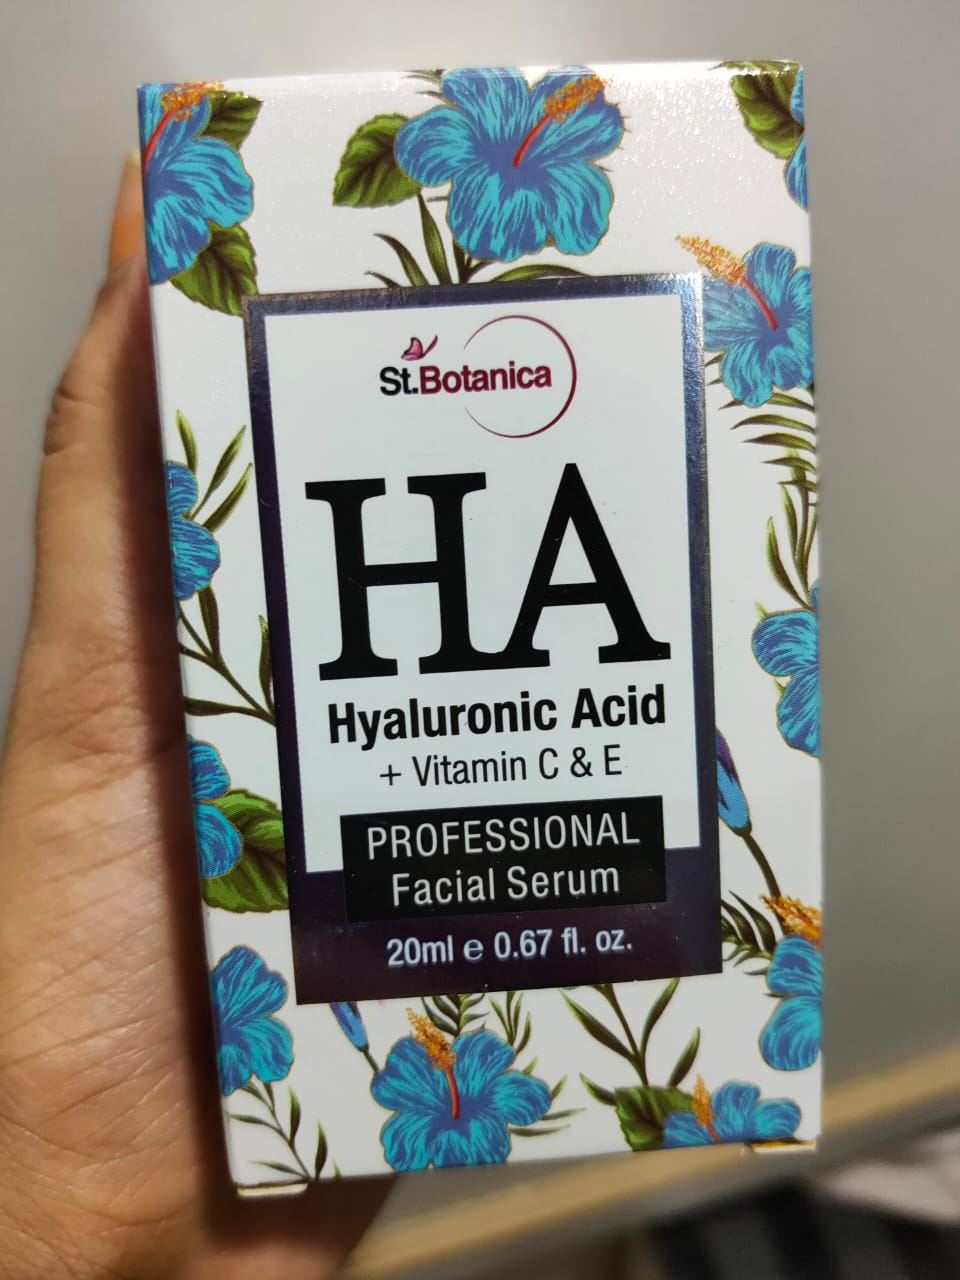 St.Botanica Hyaluronic Acid Facial Serum + Vitamin C, E-Makes skin more glowy-By suhanigaba